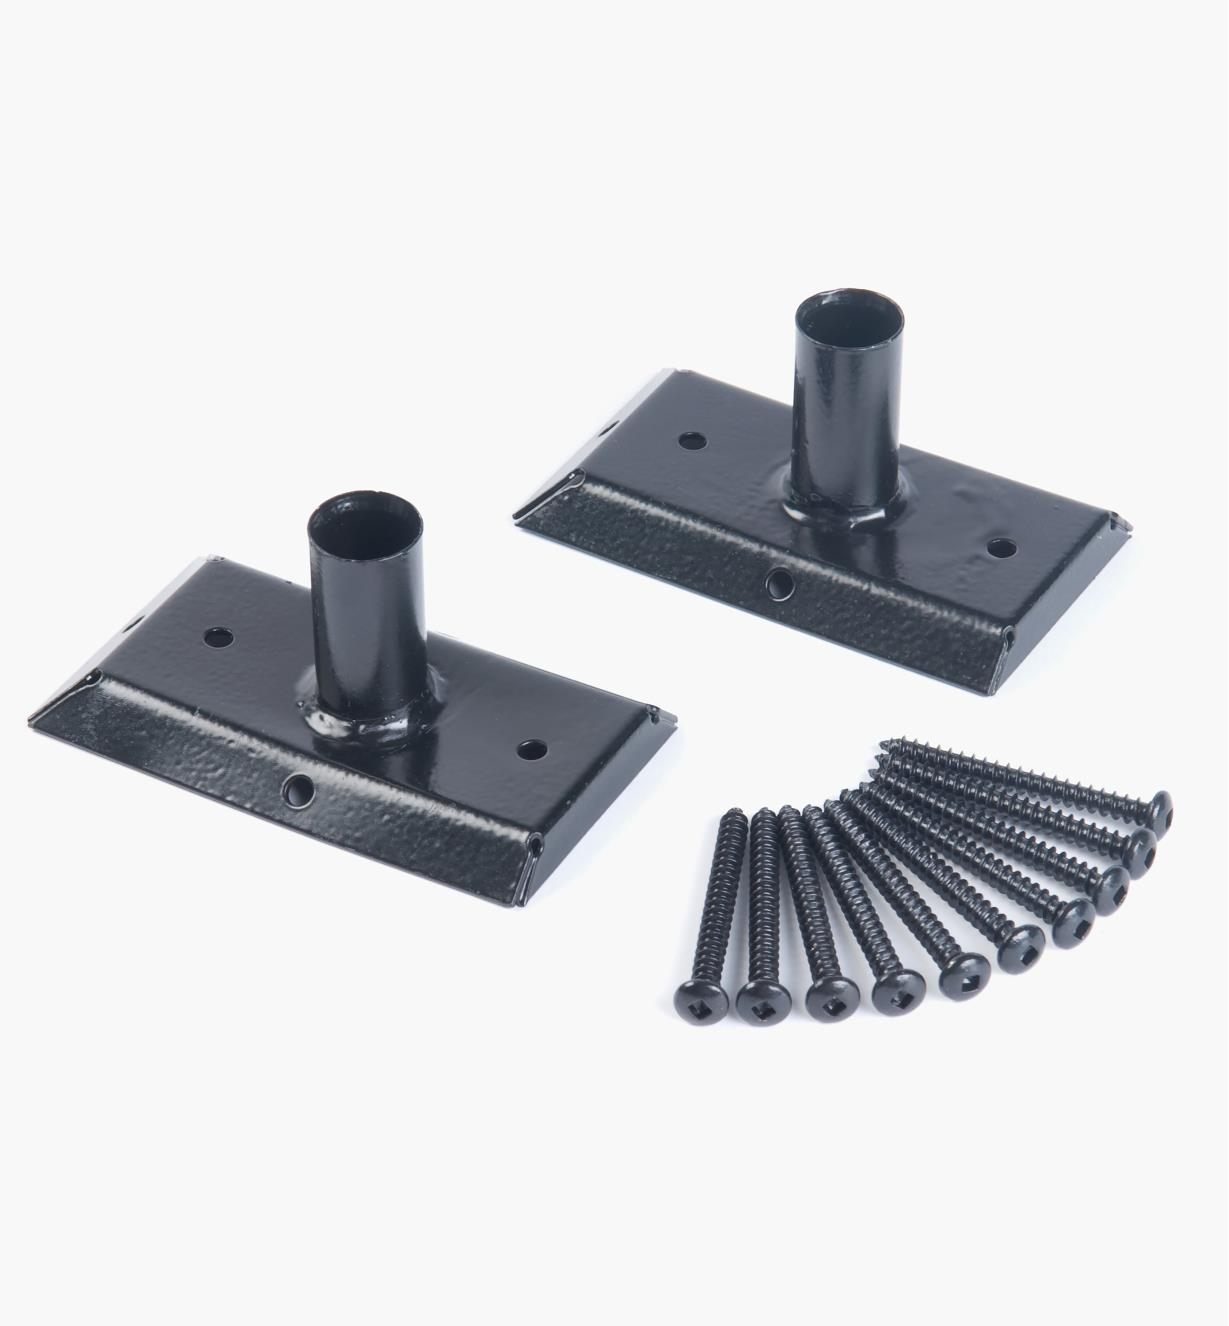 01S1810 - Titan 90° Rail Connectors, pair